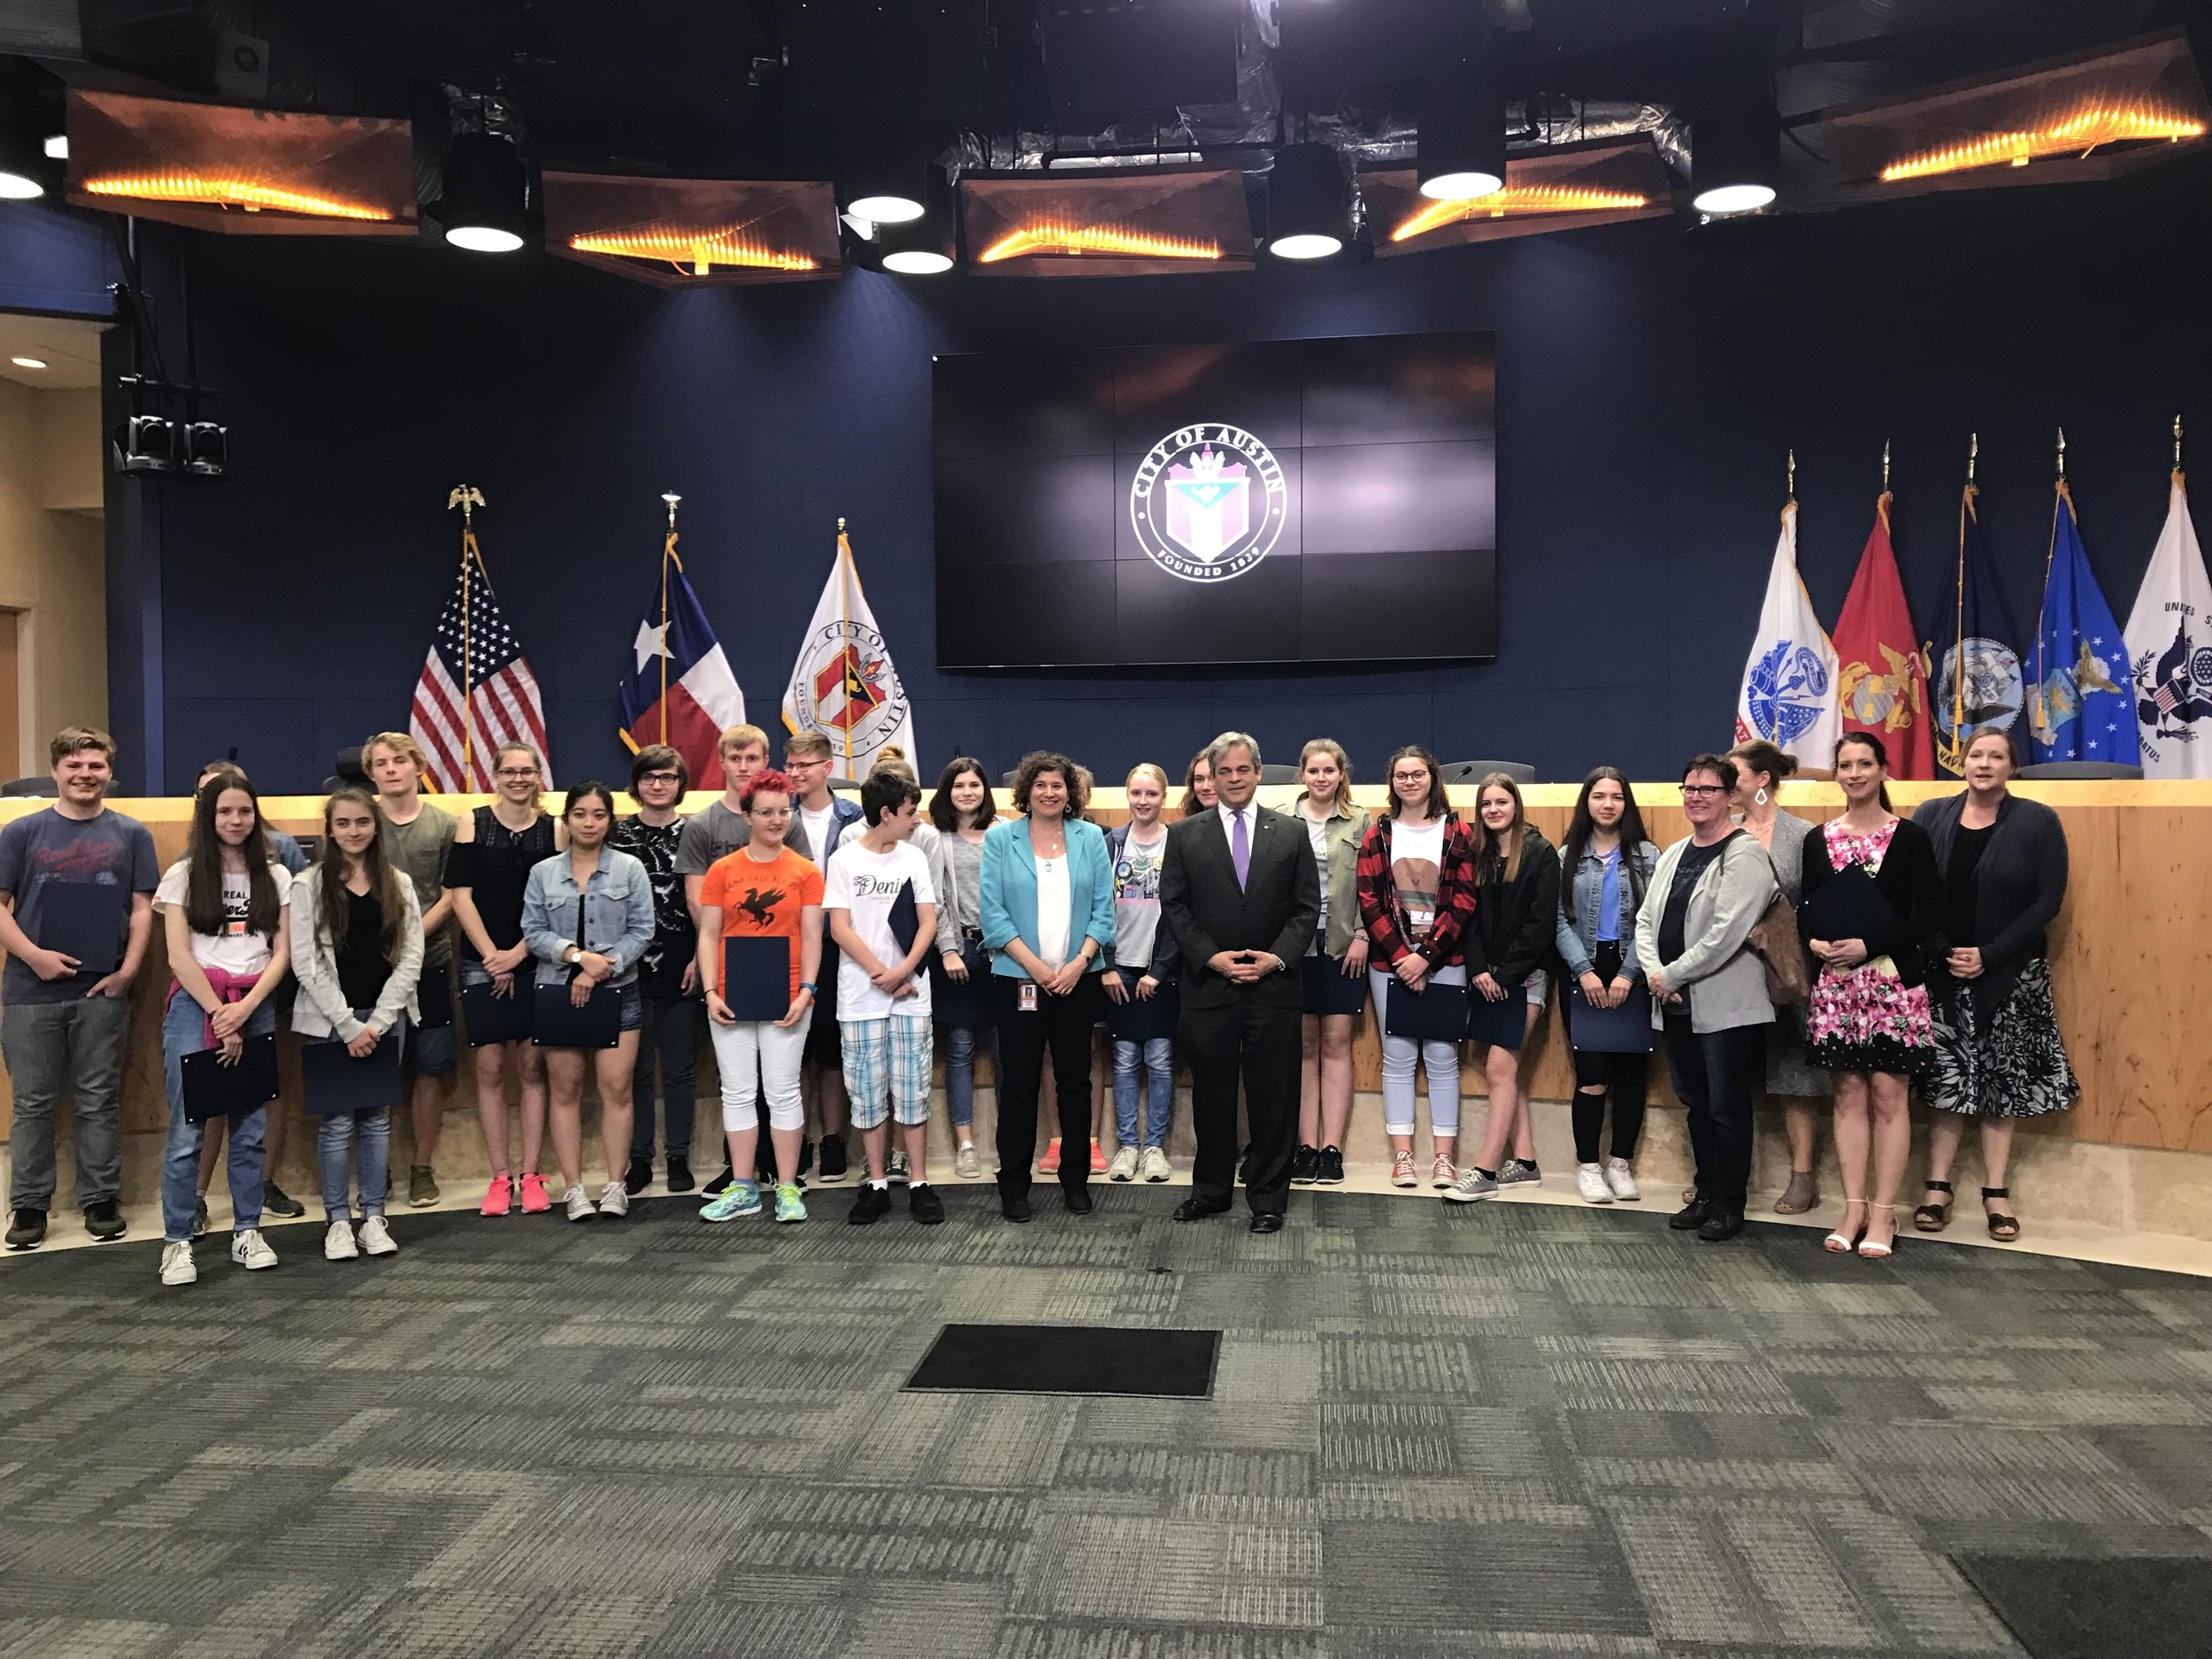 On Thursday, March 22, Mayor Steve Adler and Council Member Alison Alter recognized the Austin-Koblenz Secondary Student Exchange and its 27 years of operations. The Koblenz students were awarded certificates as Honorary Austin Citizens and the Austin host students were given certificates of appreciation for being ambassadors for Austin.